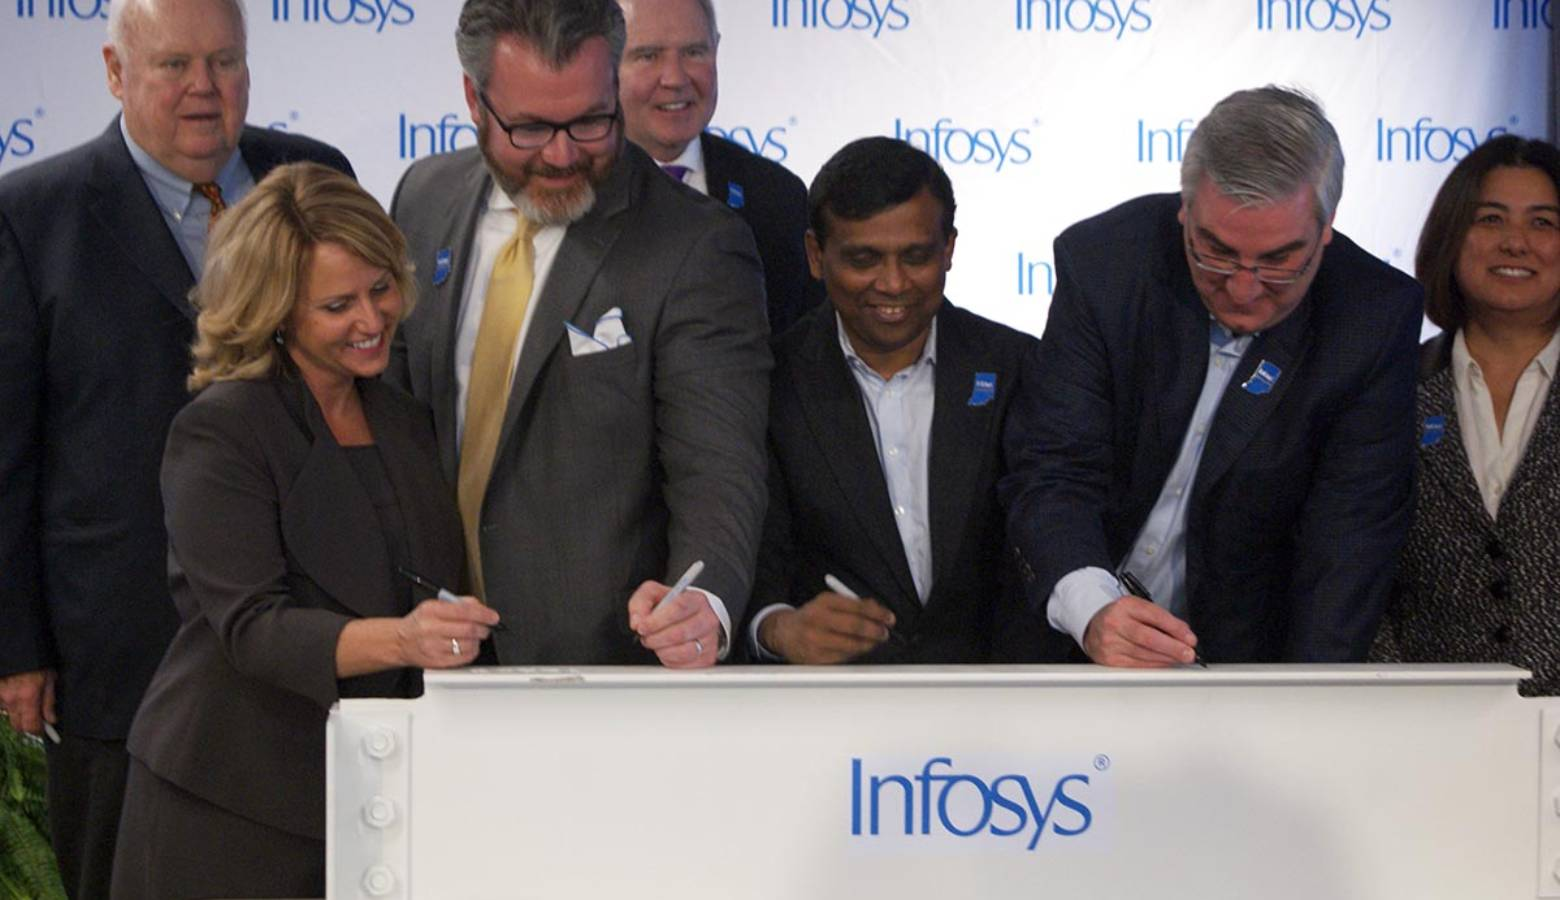 State and local officials along with Infosys company leaders sign a beam commemorating the progress to its U.S. Educational Center in Indianapolis. (Samantha Horton/IPB News)